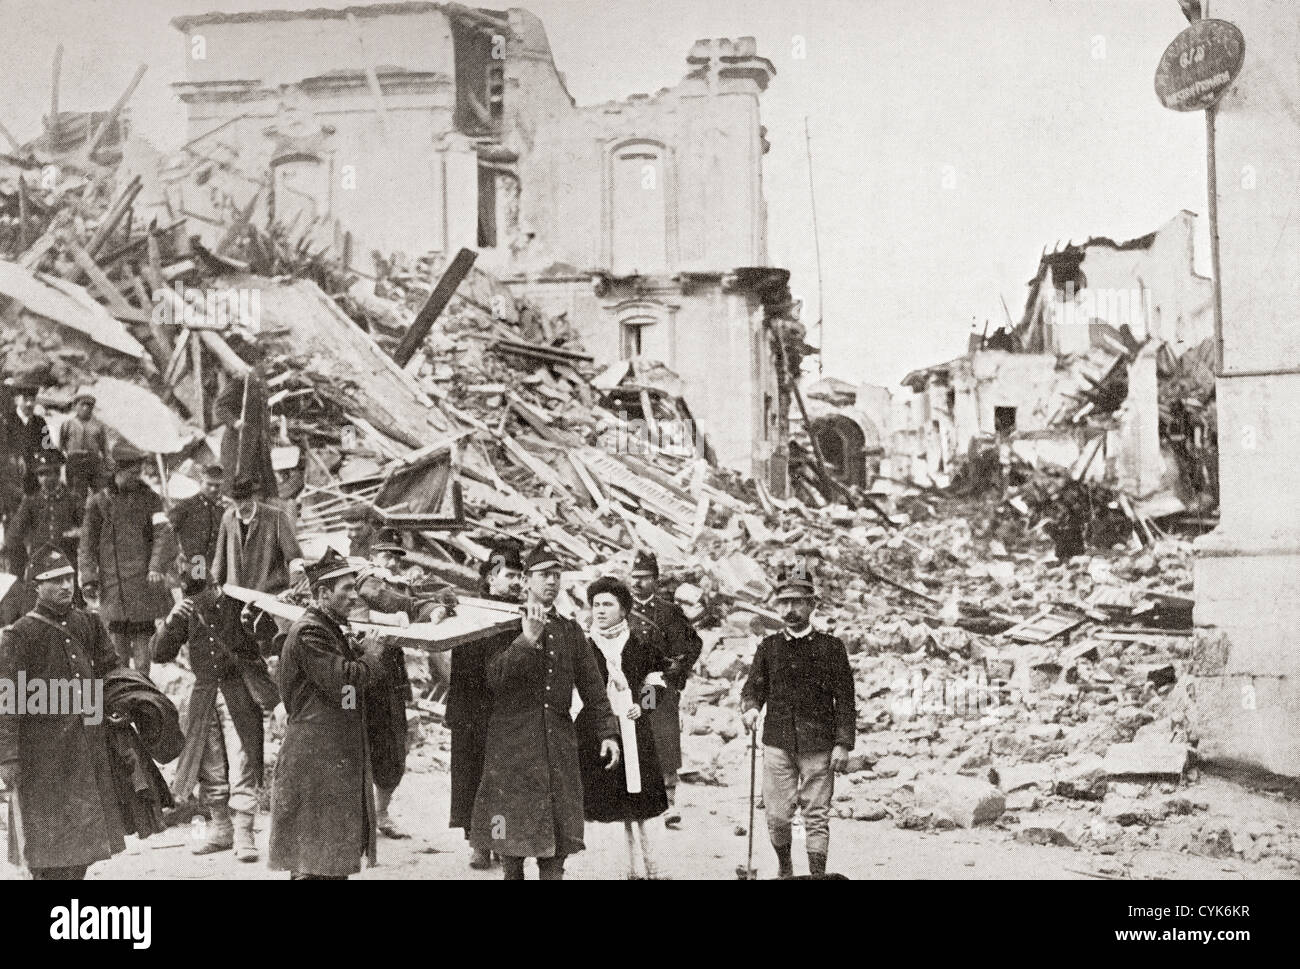 King Victor Emanuel III of Italy and his wife Elena of Montenegro visit Messina, Italy after the earthquake of 1908. - Stock Image